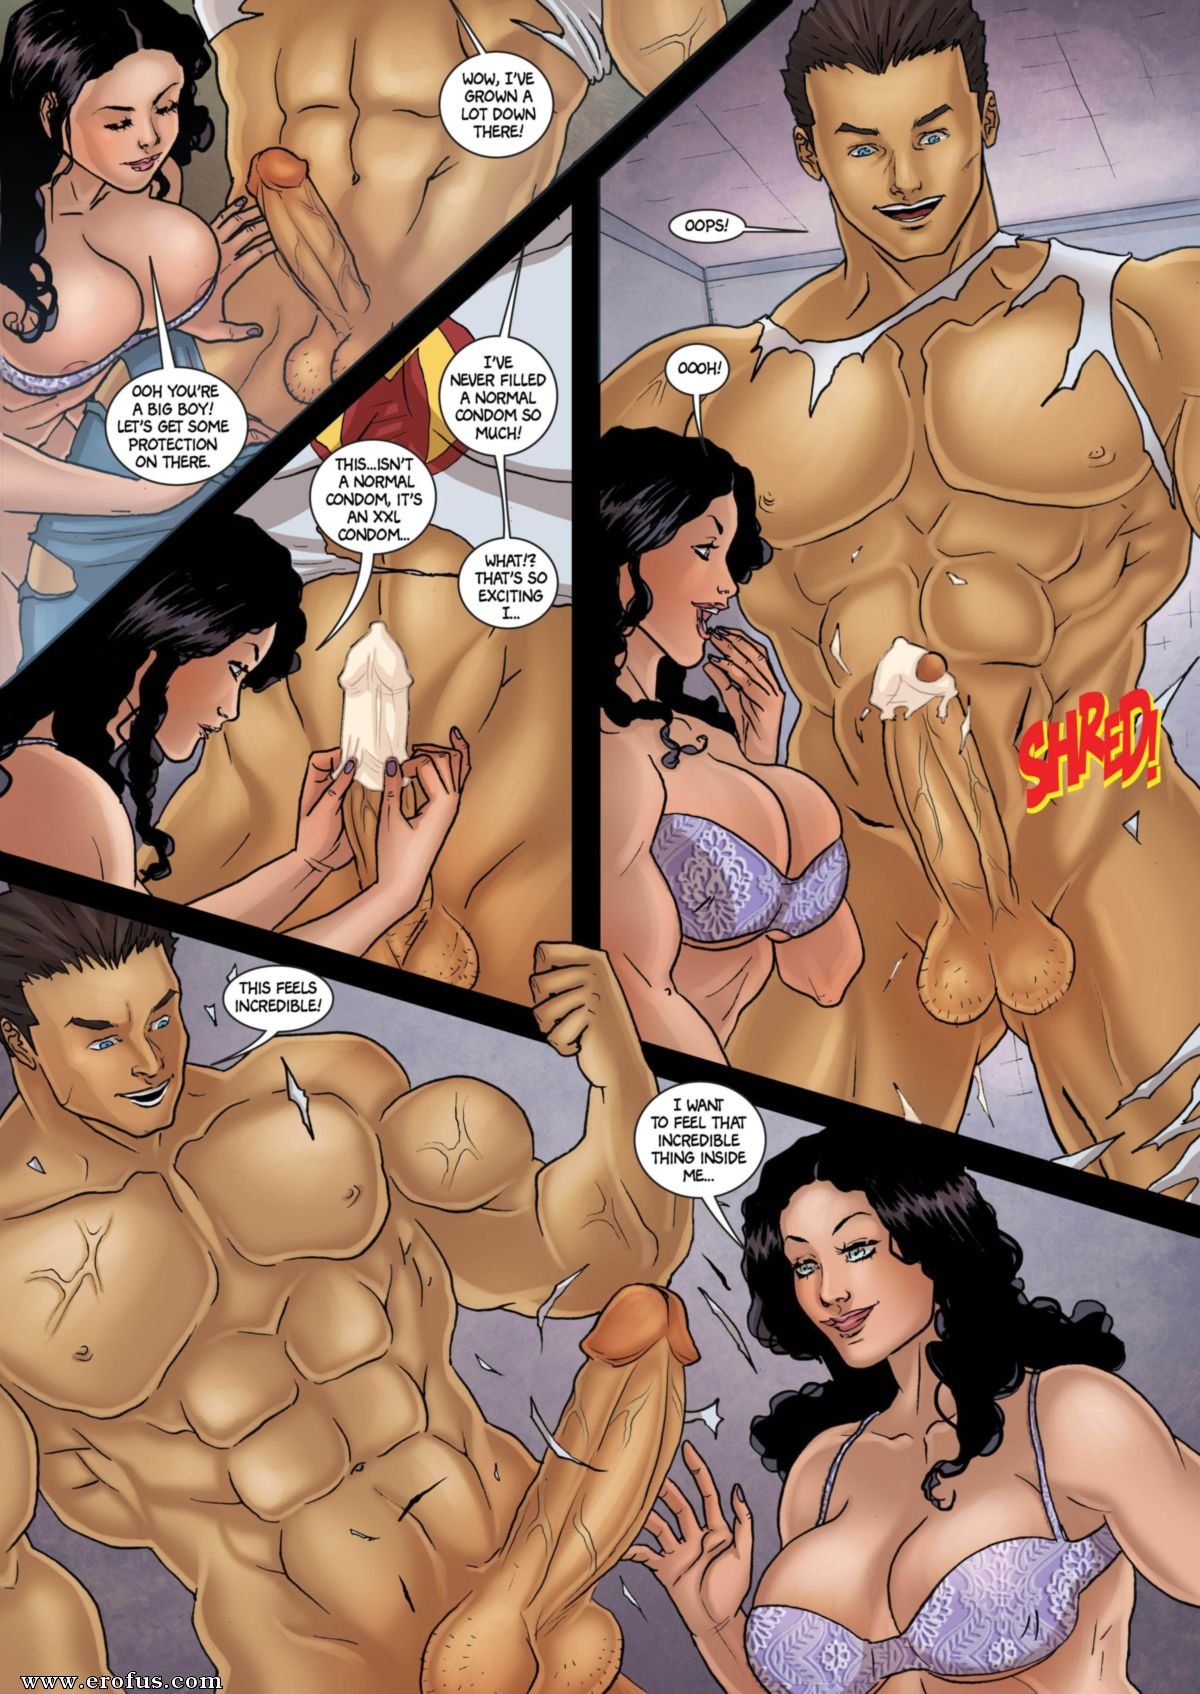 Anormal Porn page 20   zzz-comics/sizeable-tales/issue-5   erofus - sex